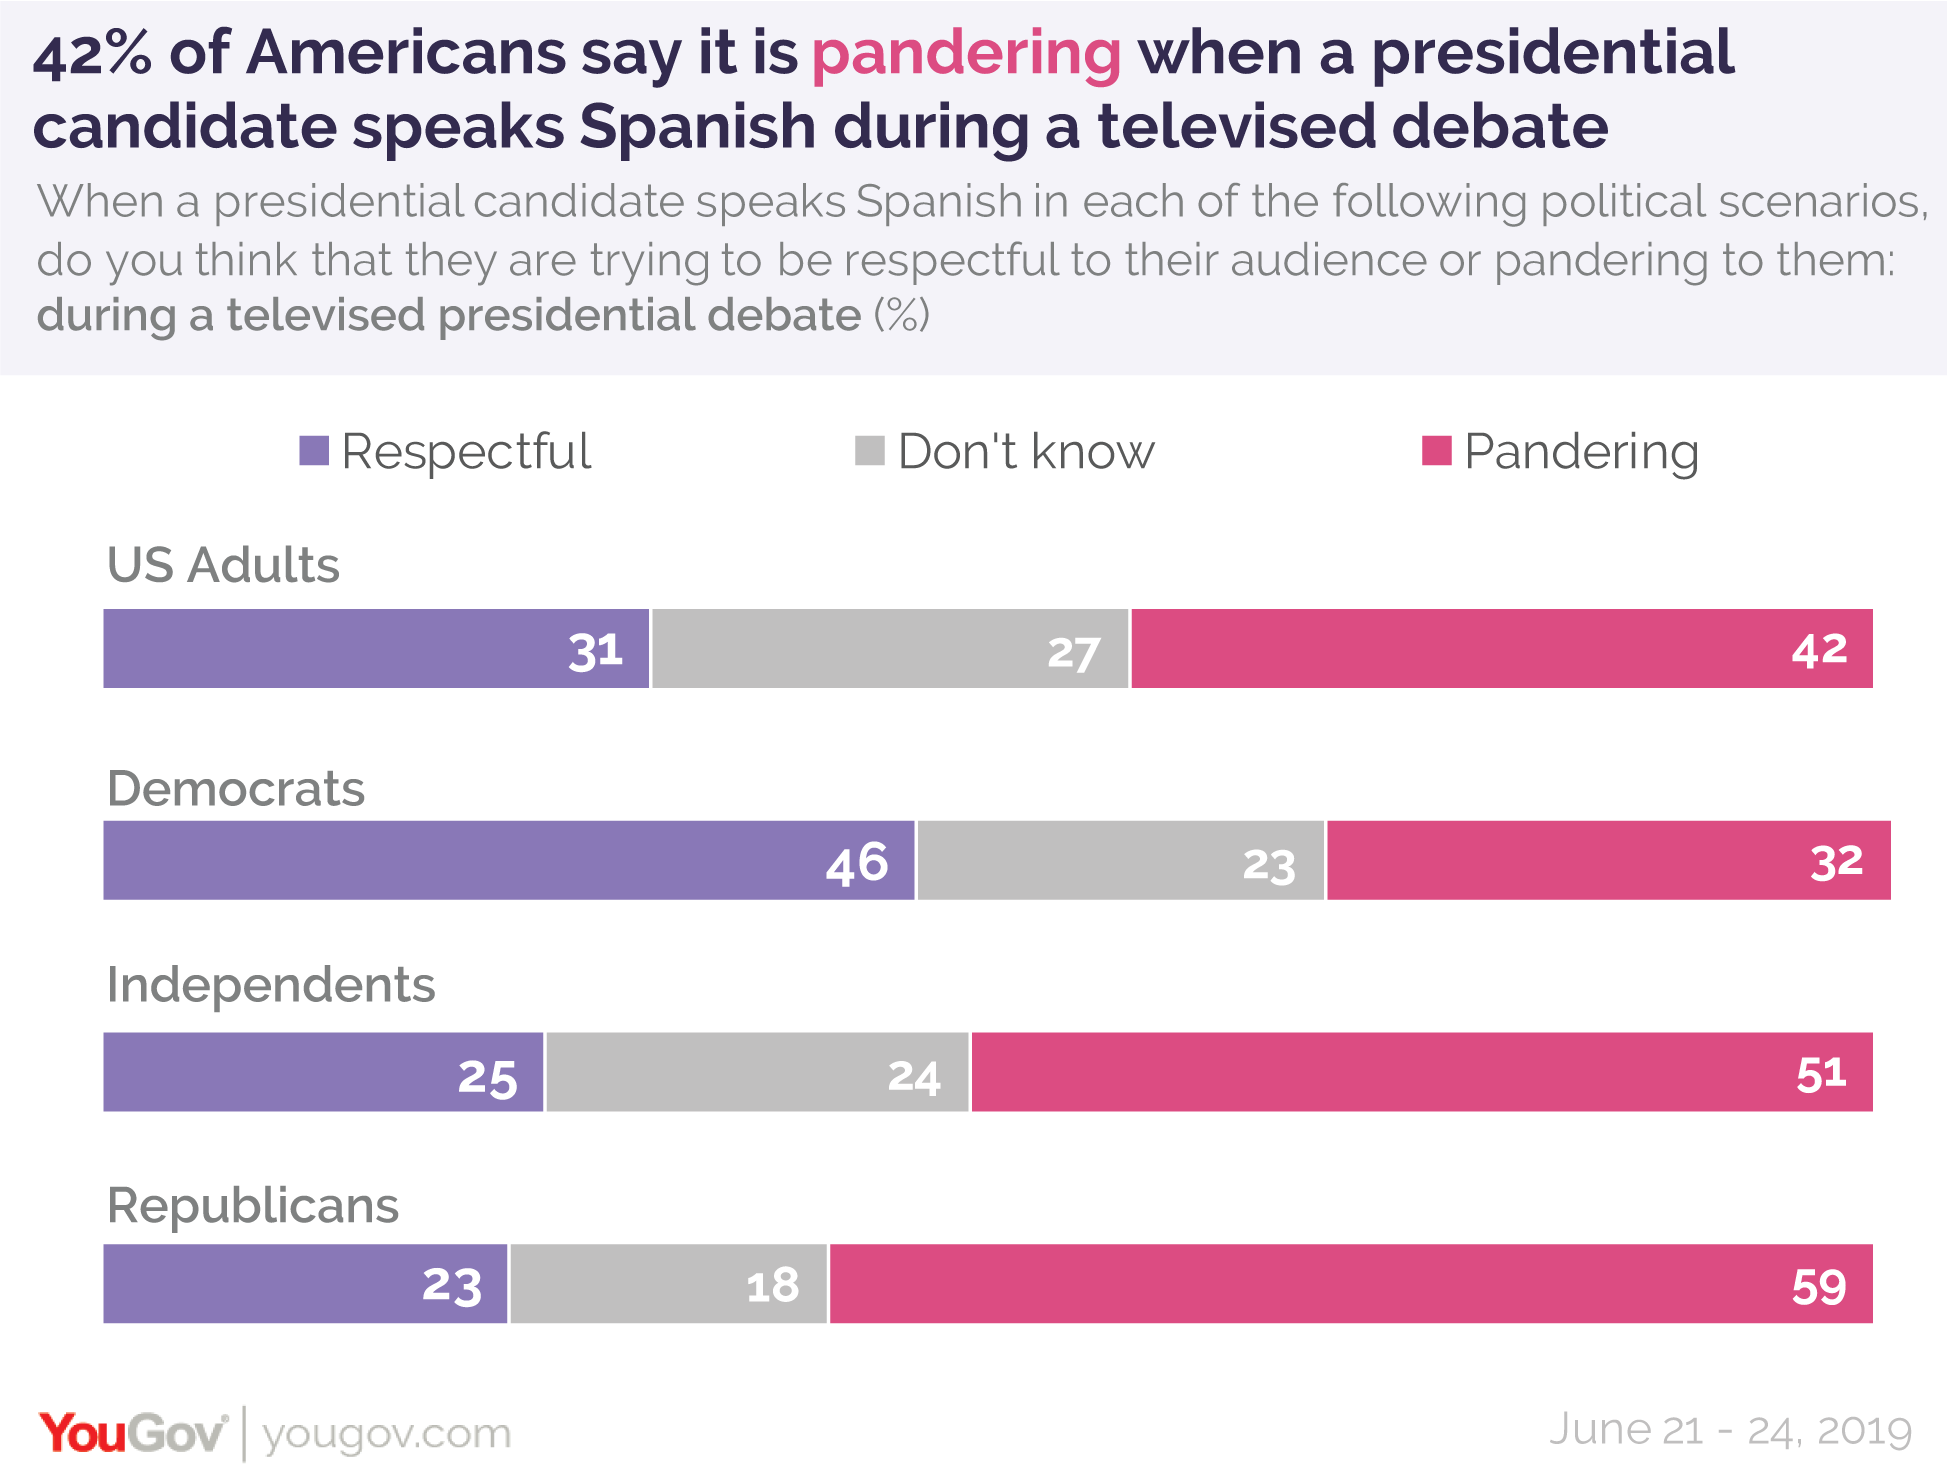 42% of Americans say it is pandering when a presidential candidate speaks Spanish during a televised debate